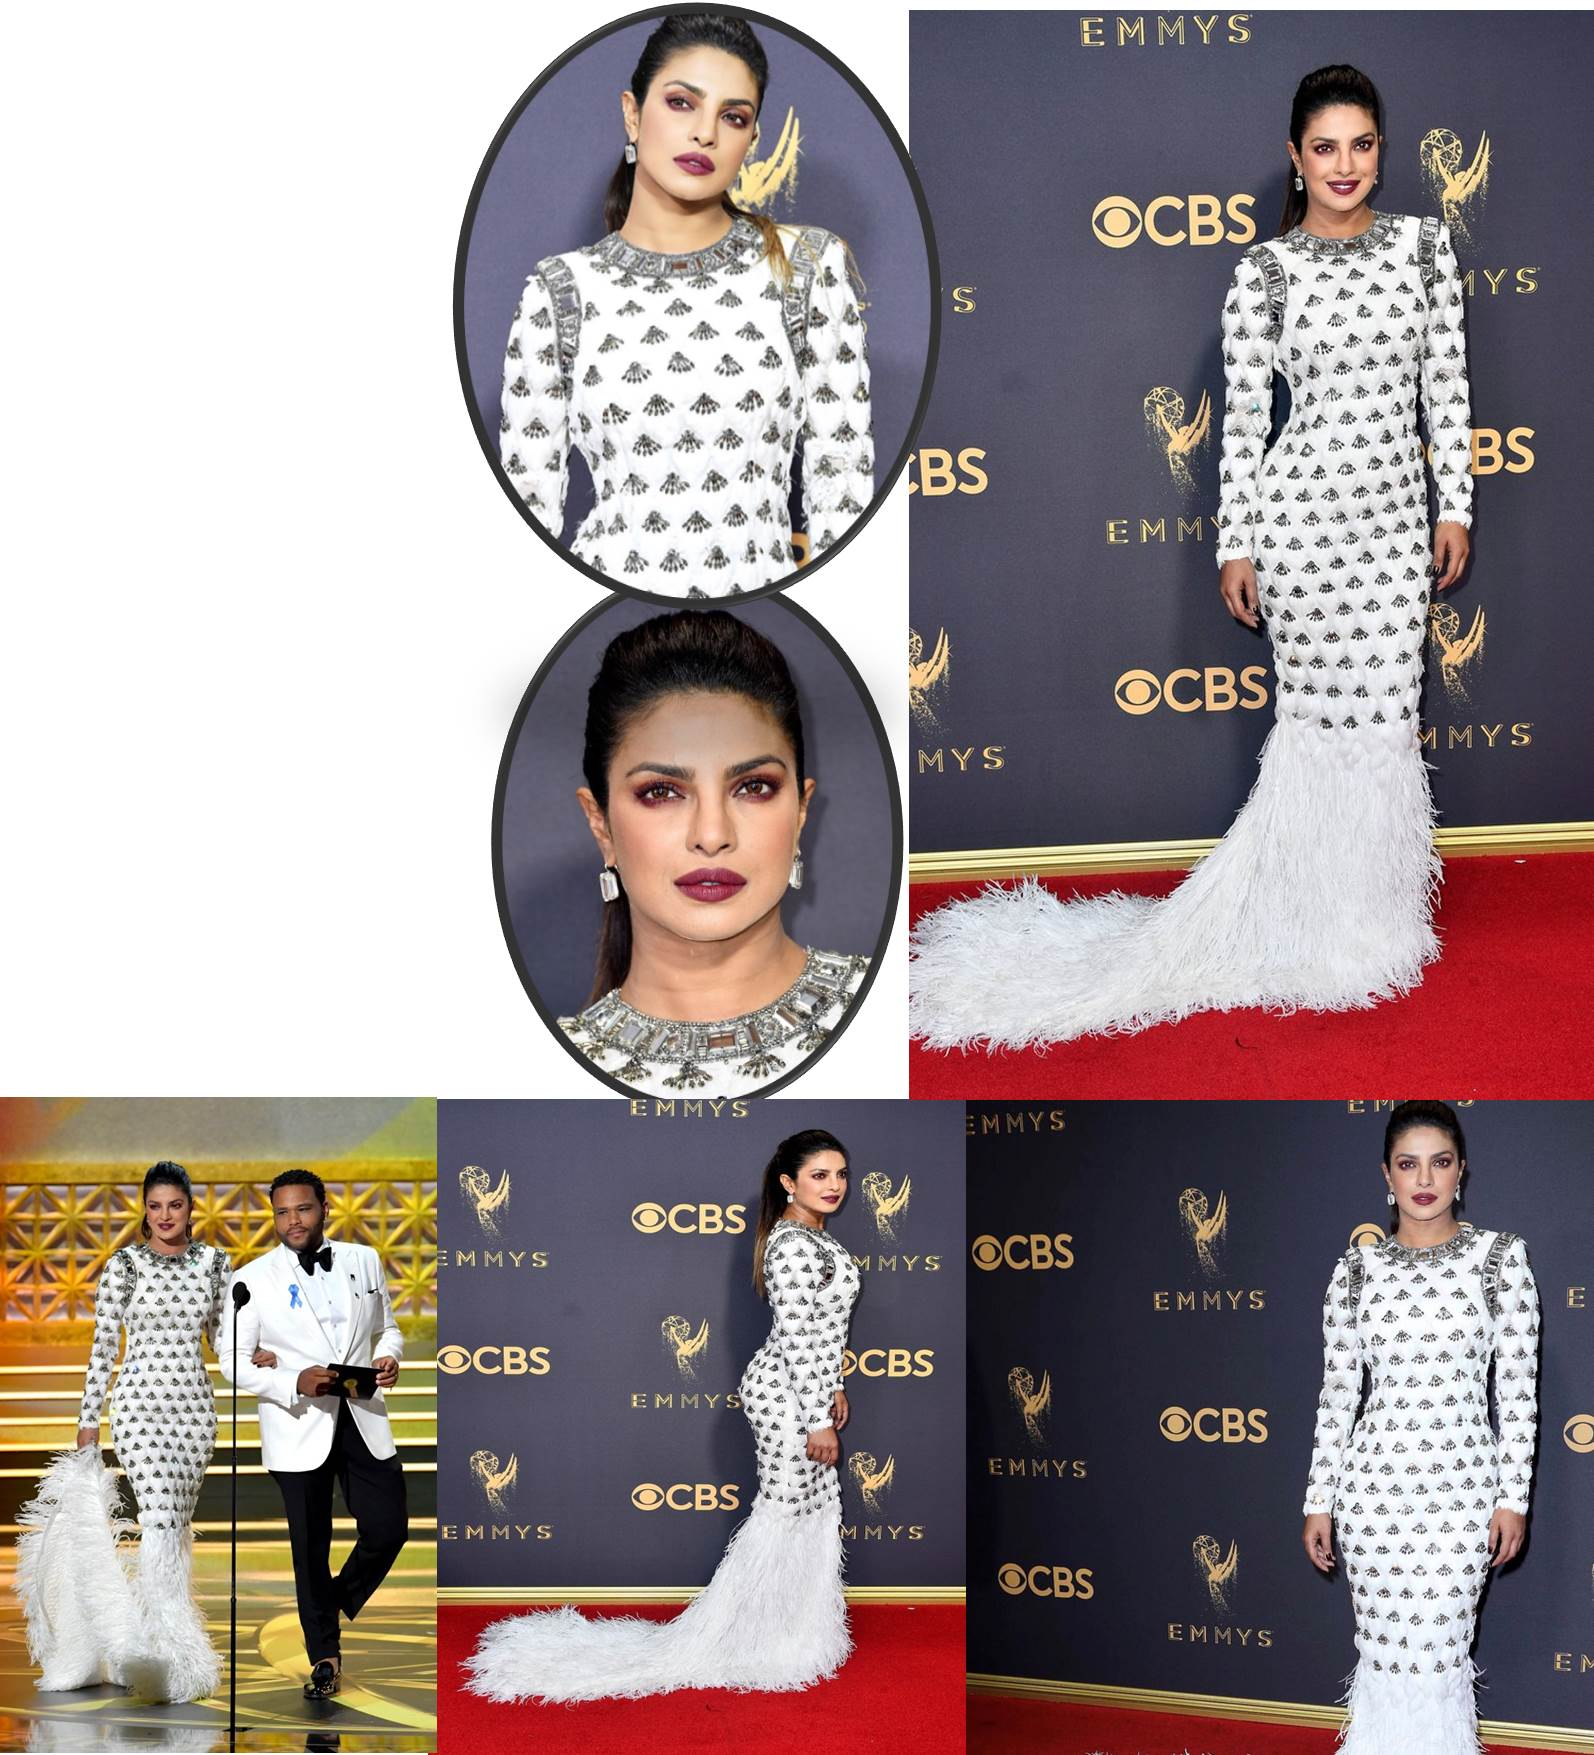 Priyanka Chopra wore a custom-made BALMAIN gown to attend the 2017 Emmys Awards in Los Angeles.